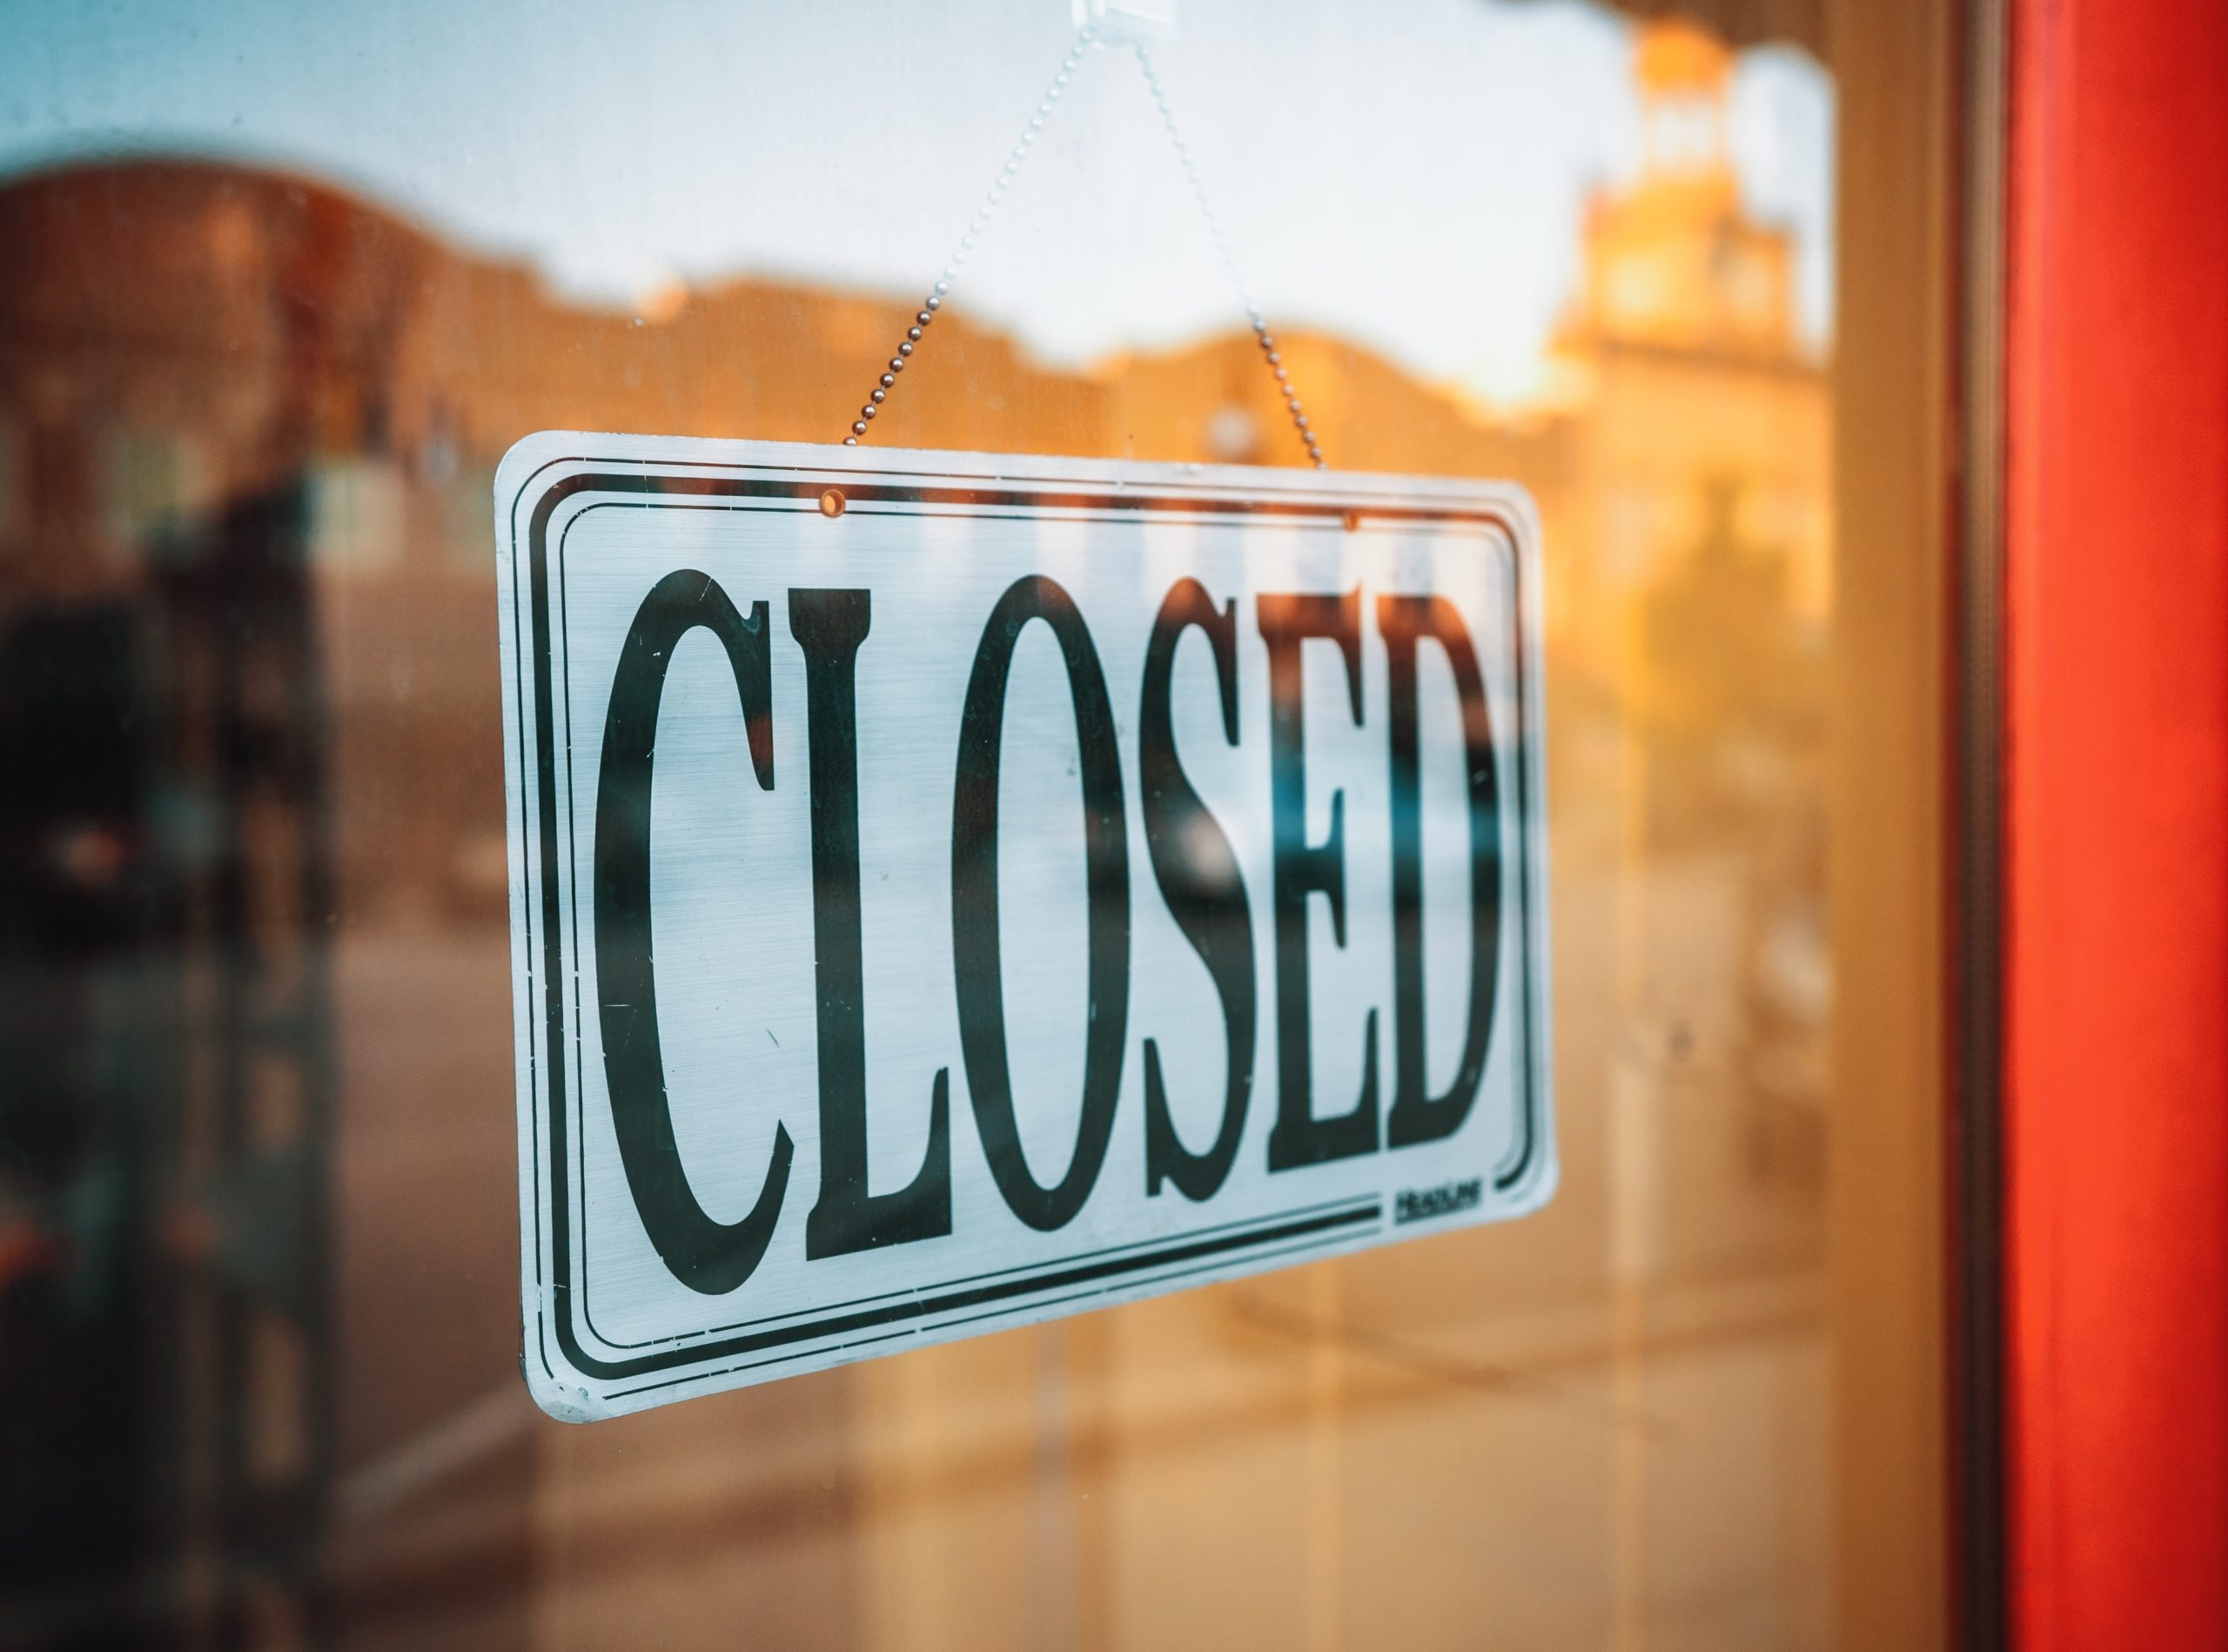 GSS Office closed